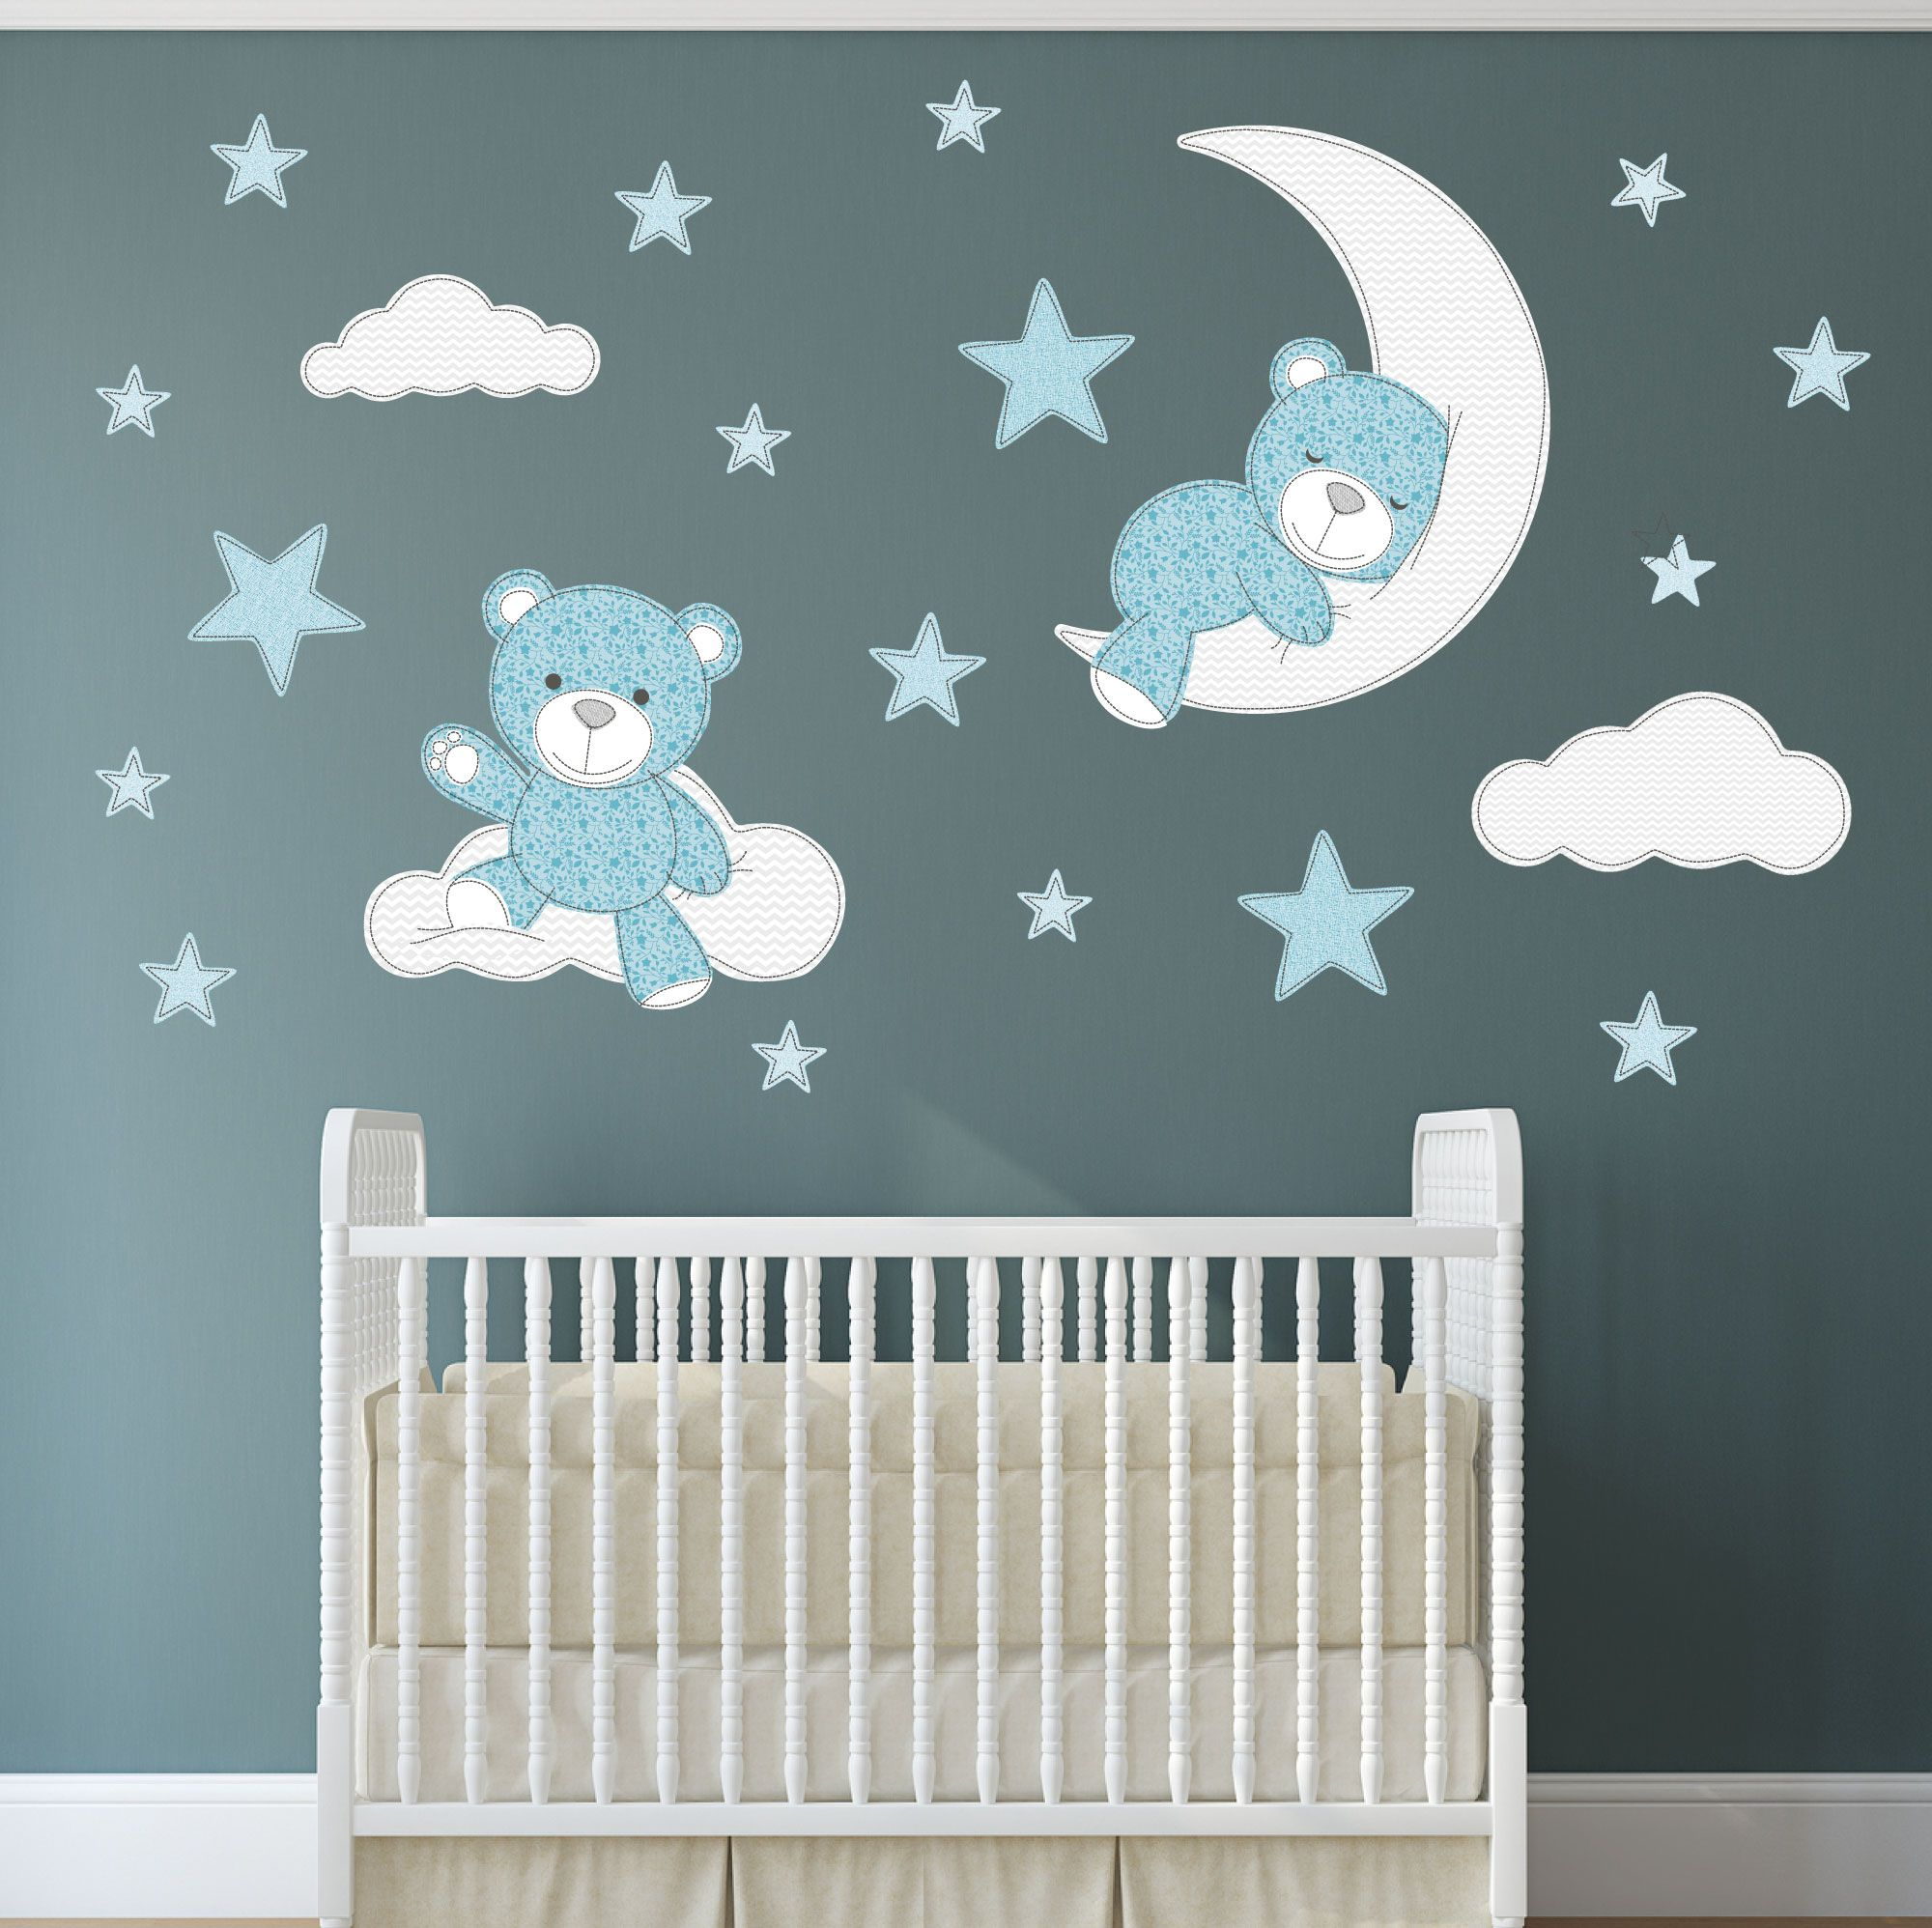 Teddy Bear Nursery Wall Decals Simply Peel And Stick The Enchanted